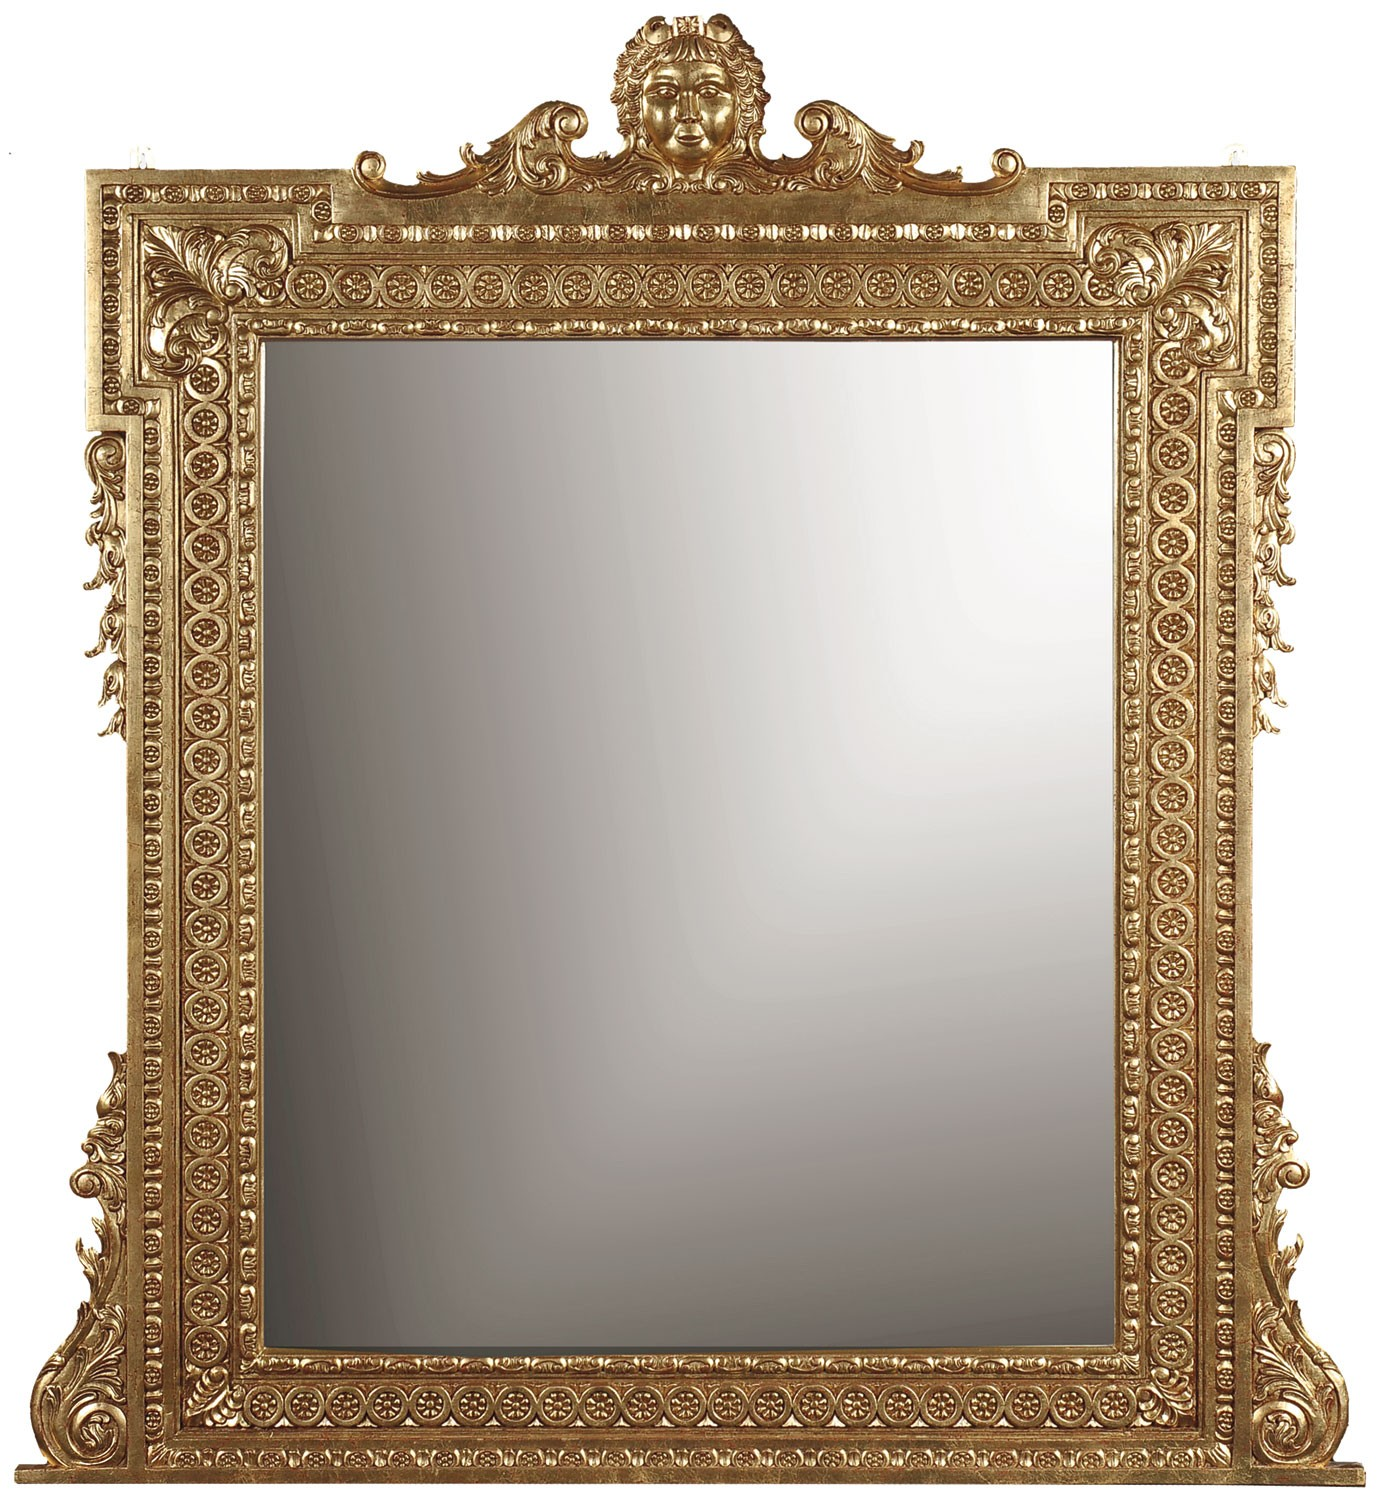 George II style mirror - Antique finish